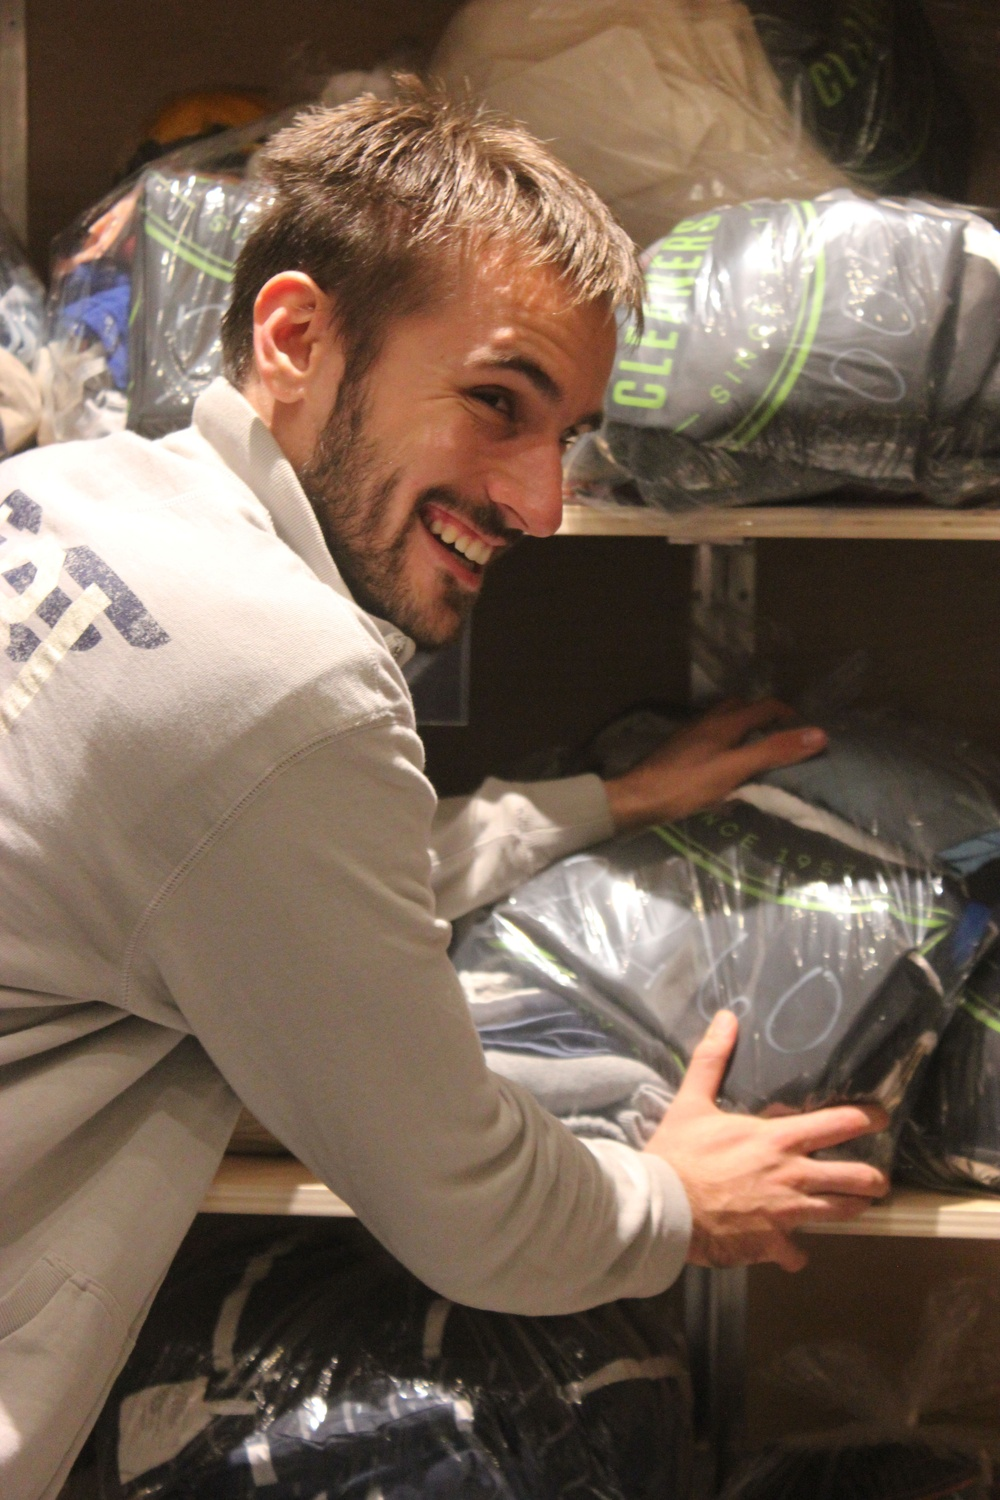 Luka Kordic loads bags of laundry off the shelf in preparation for a delivery run to the Yard dorms.